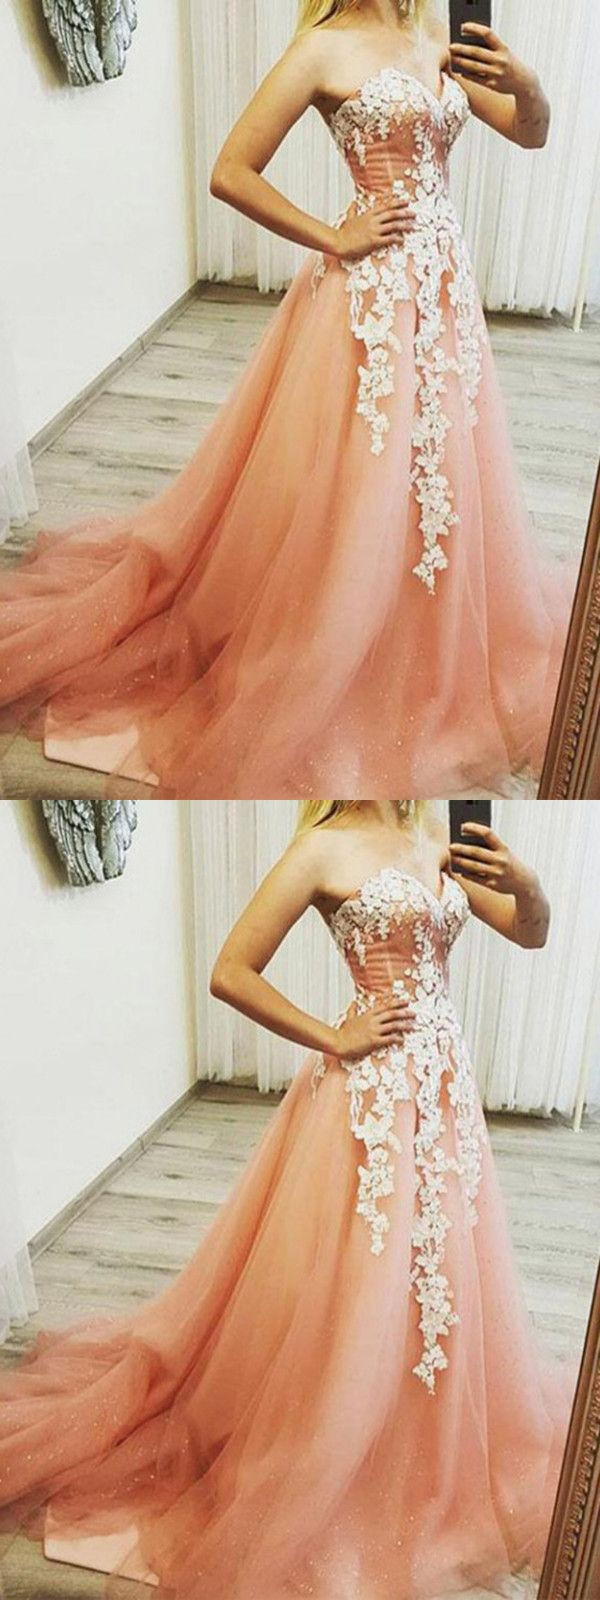 Pink plus size prom dress sweetheart vintage lace long prom dress